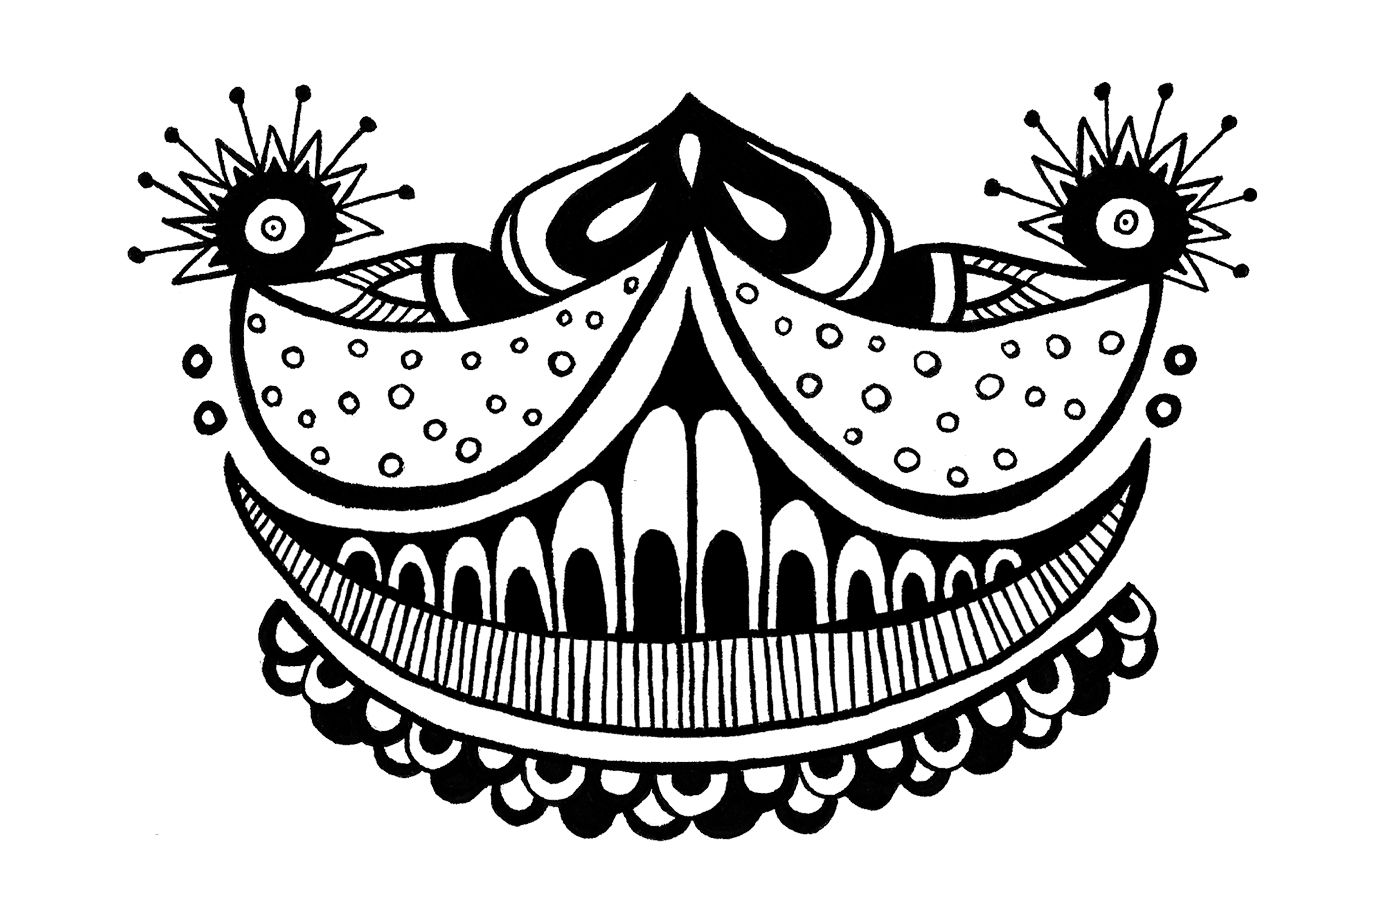 """""""Grin"""" (2014) Digital version of original work in pen on paper. 2.5 x 3.5 inches."""